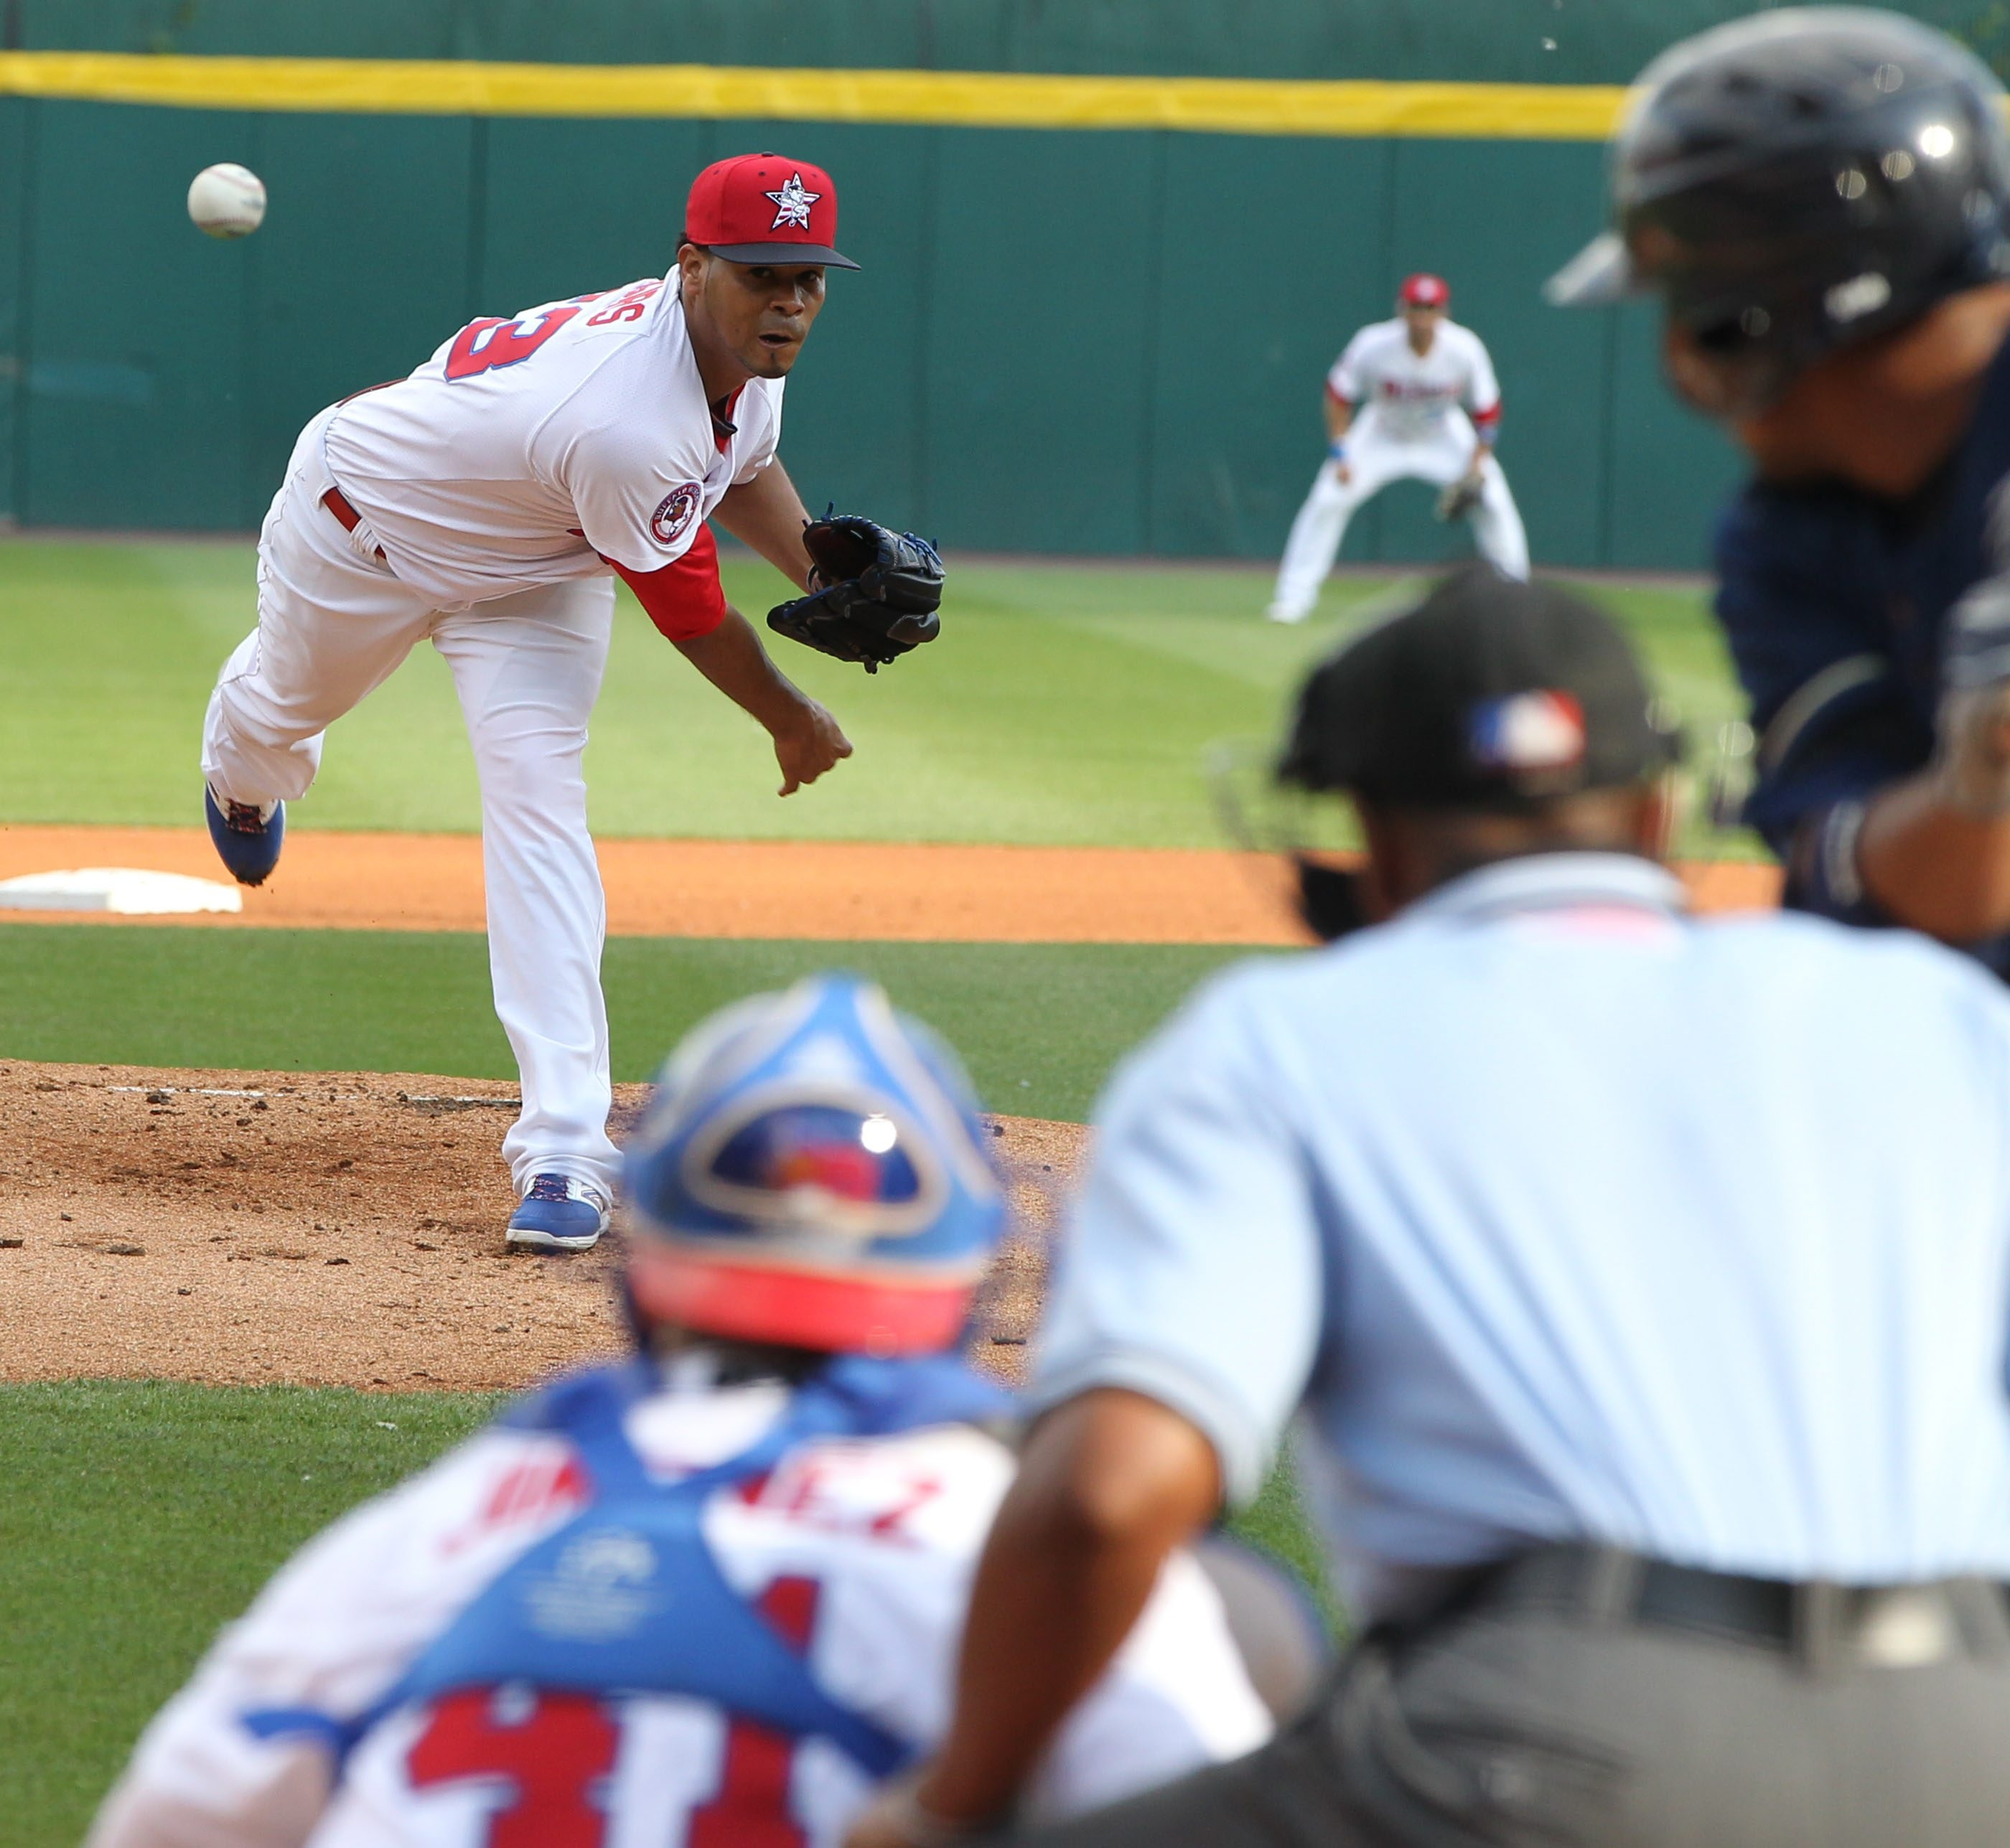 Buffalo's Esmil Rogers had a no-decision against Scranton/Wilkes Barre Thursday. View a photo gallery at BuffaloNews.com.